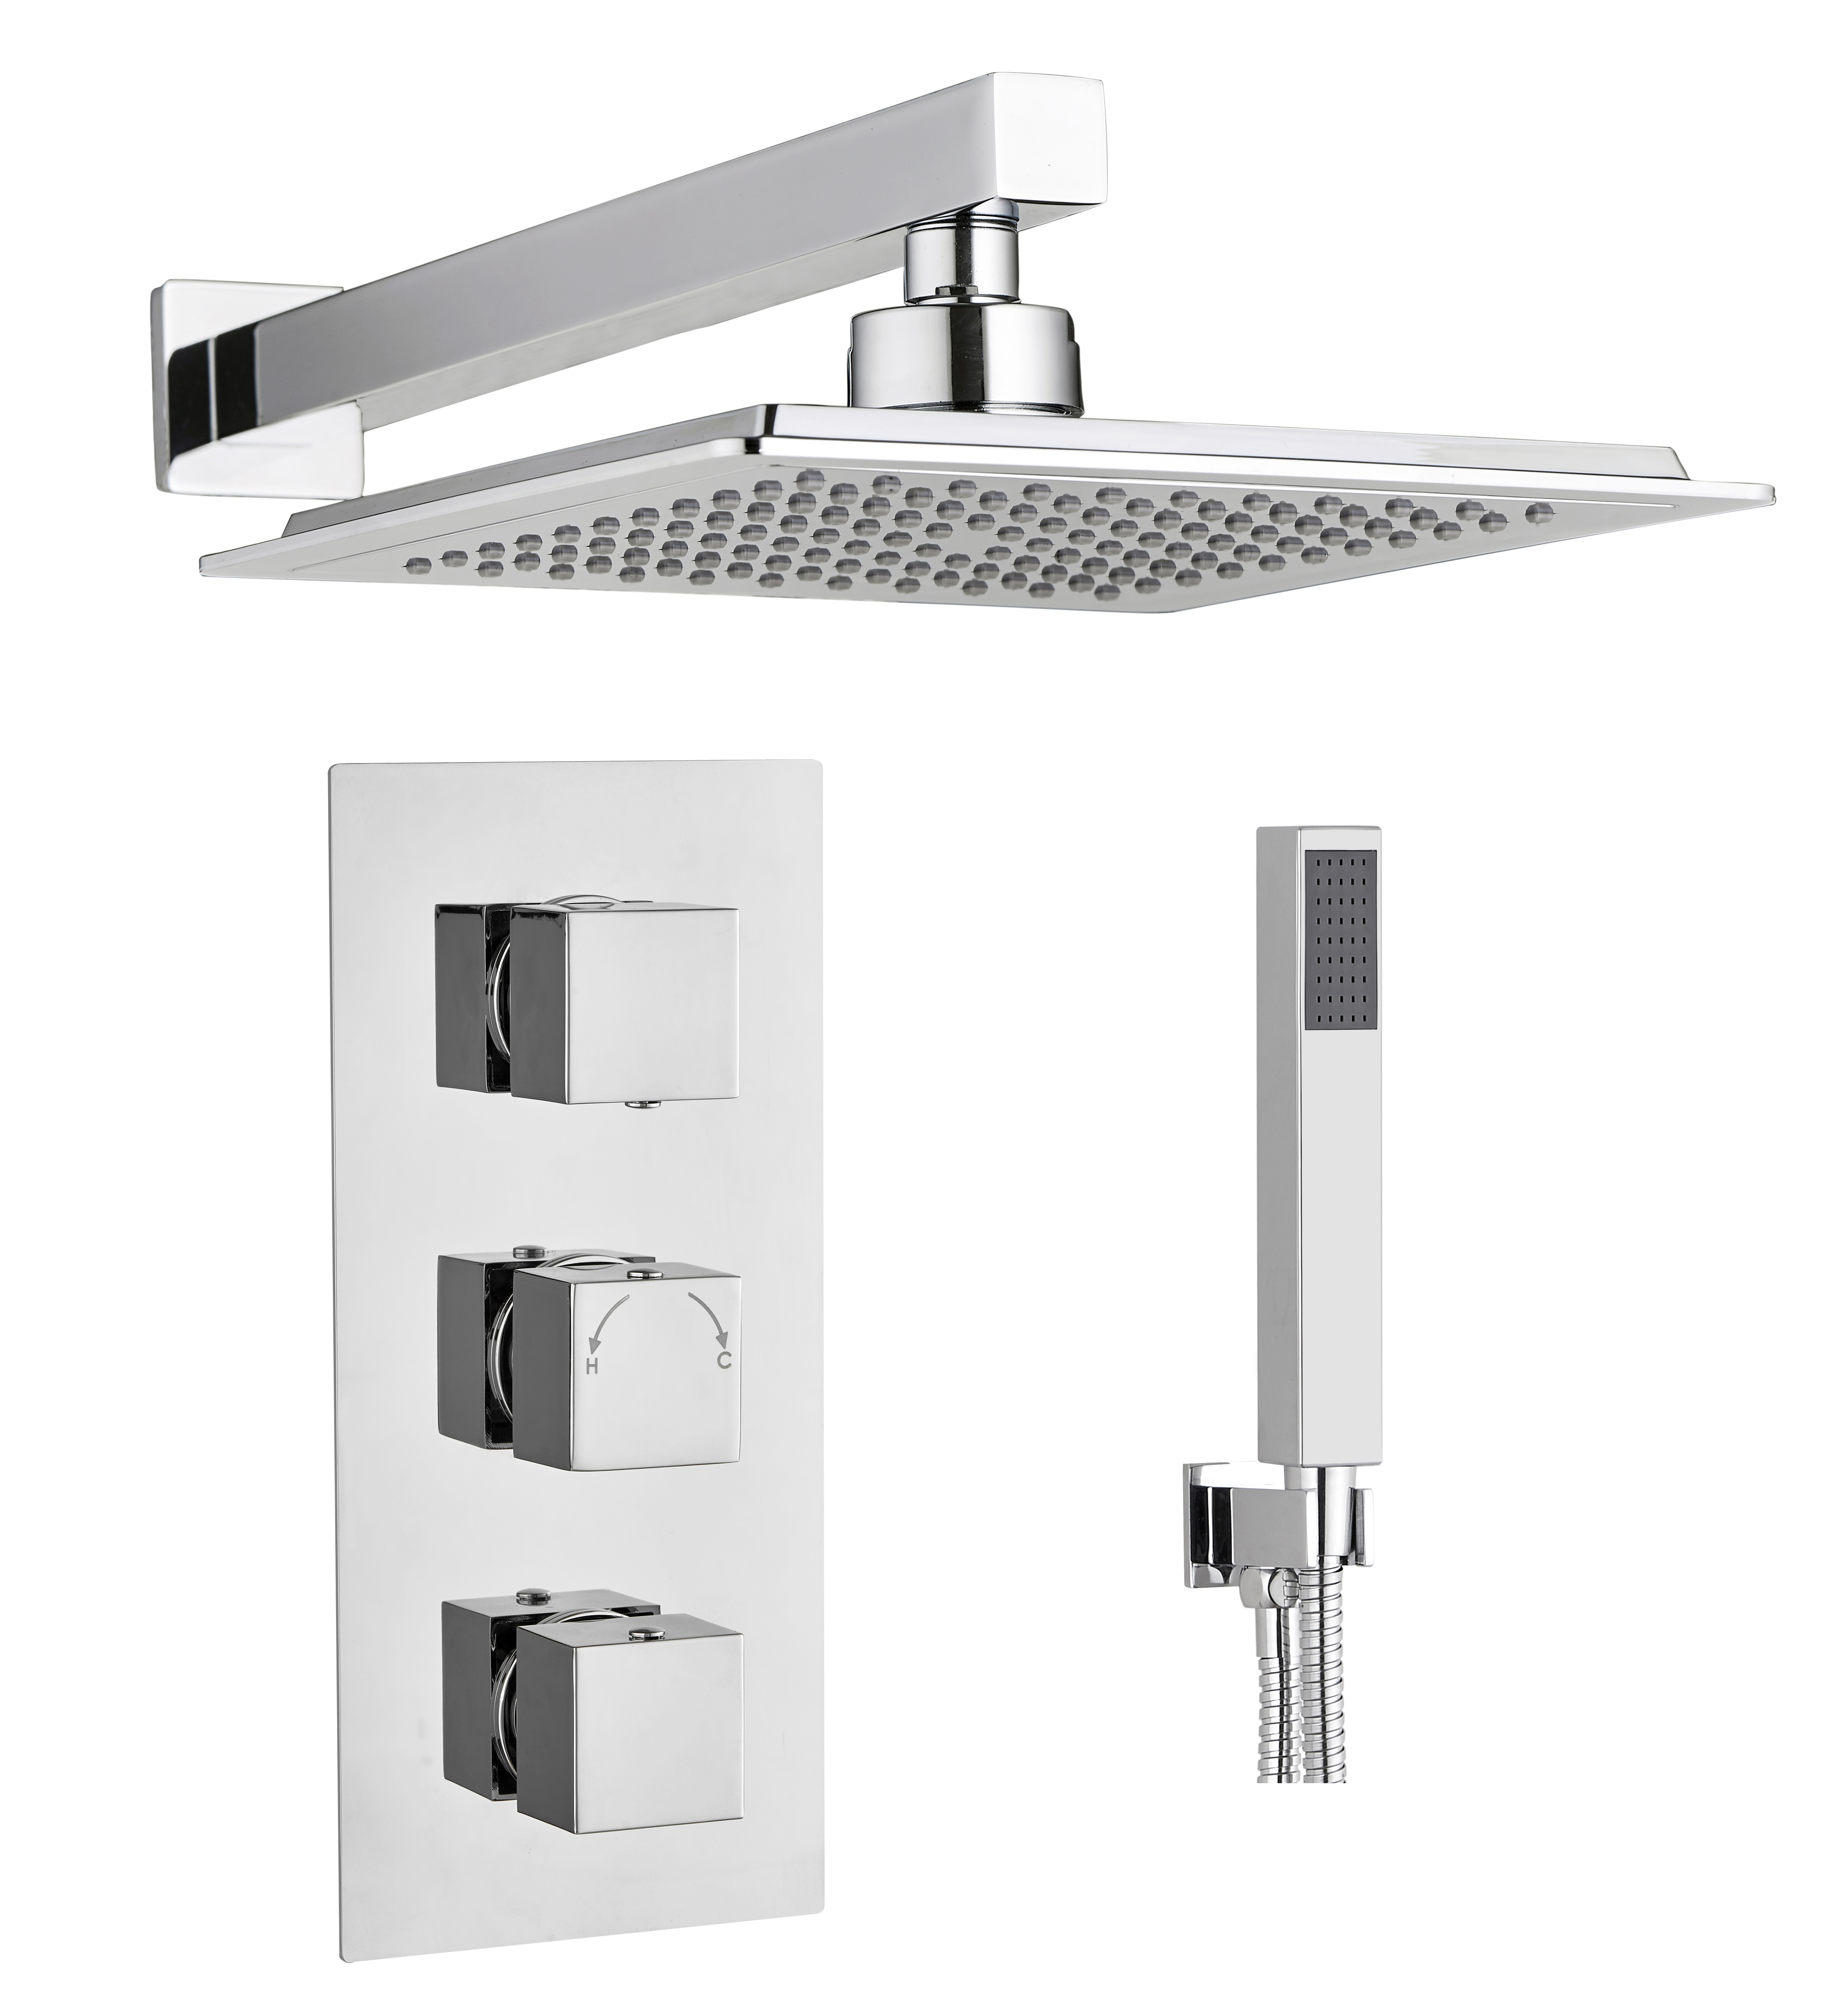 High Quality Professional Design Thermostatic Mixer Valve: Square Concealed Thermostatic Shower Mixer Valve 3 Handle